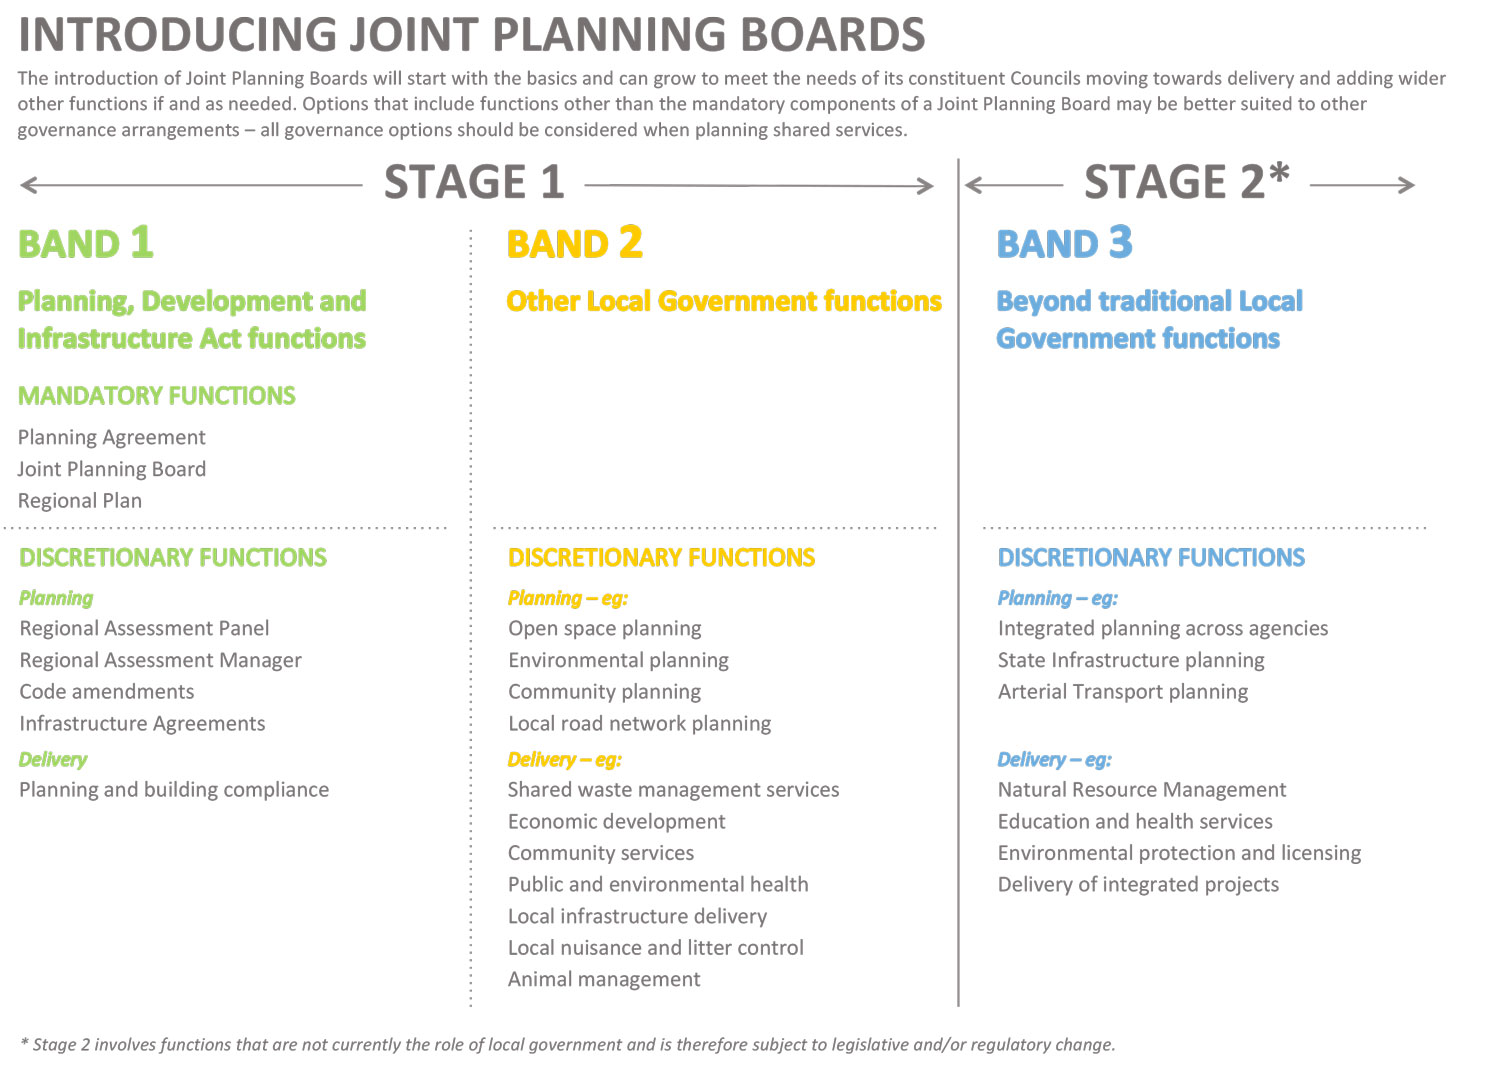 Introducing Joint Planning Boards staging